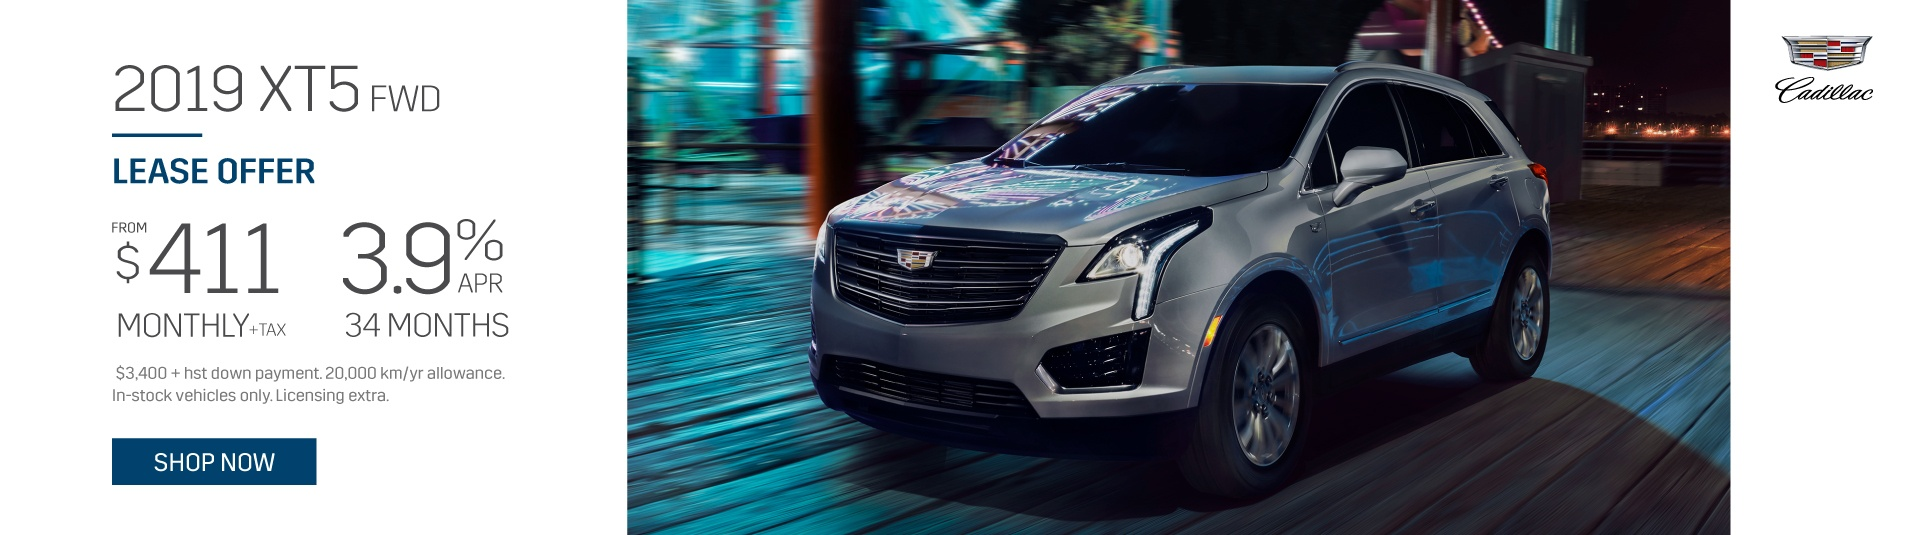 Applewood Cadillac XT5 Lease Offer in Mississauga